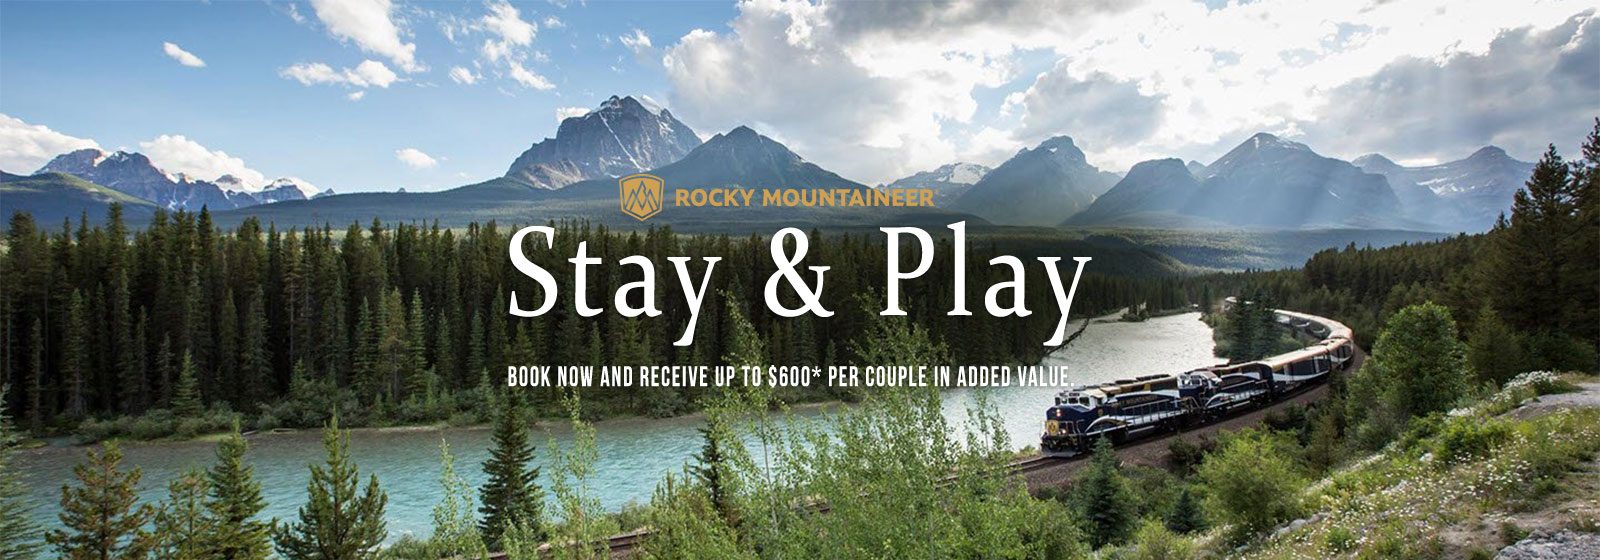 Rocky Mountaineer Stay & Play